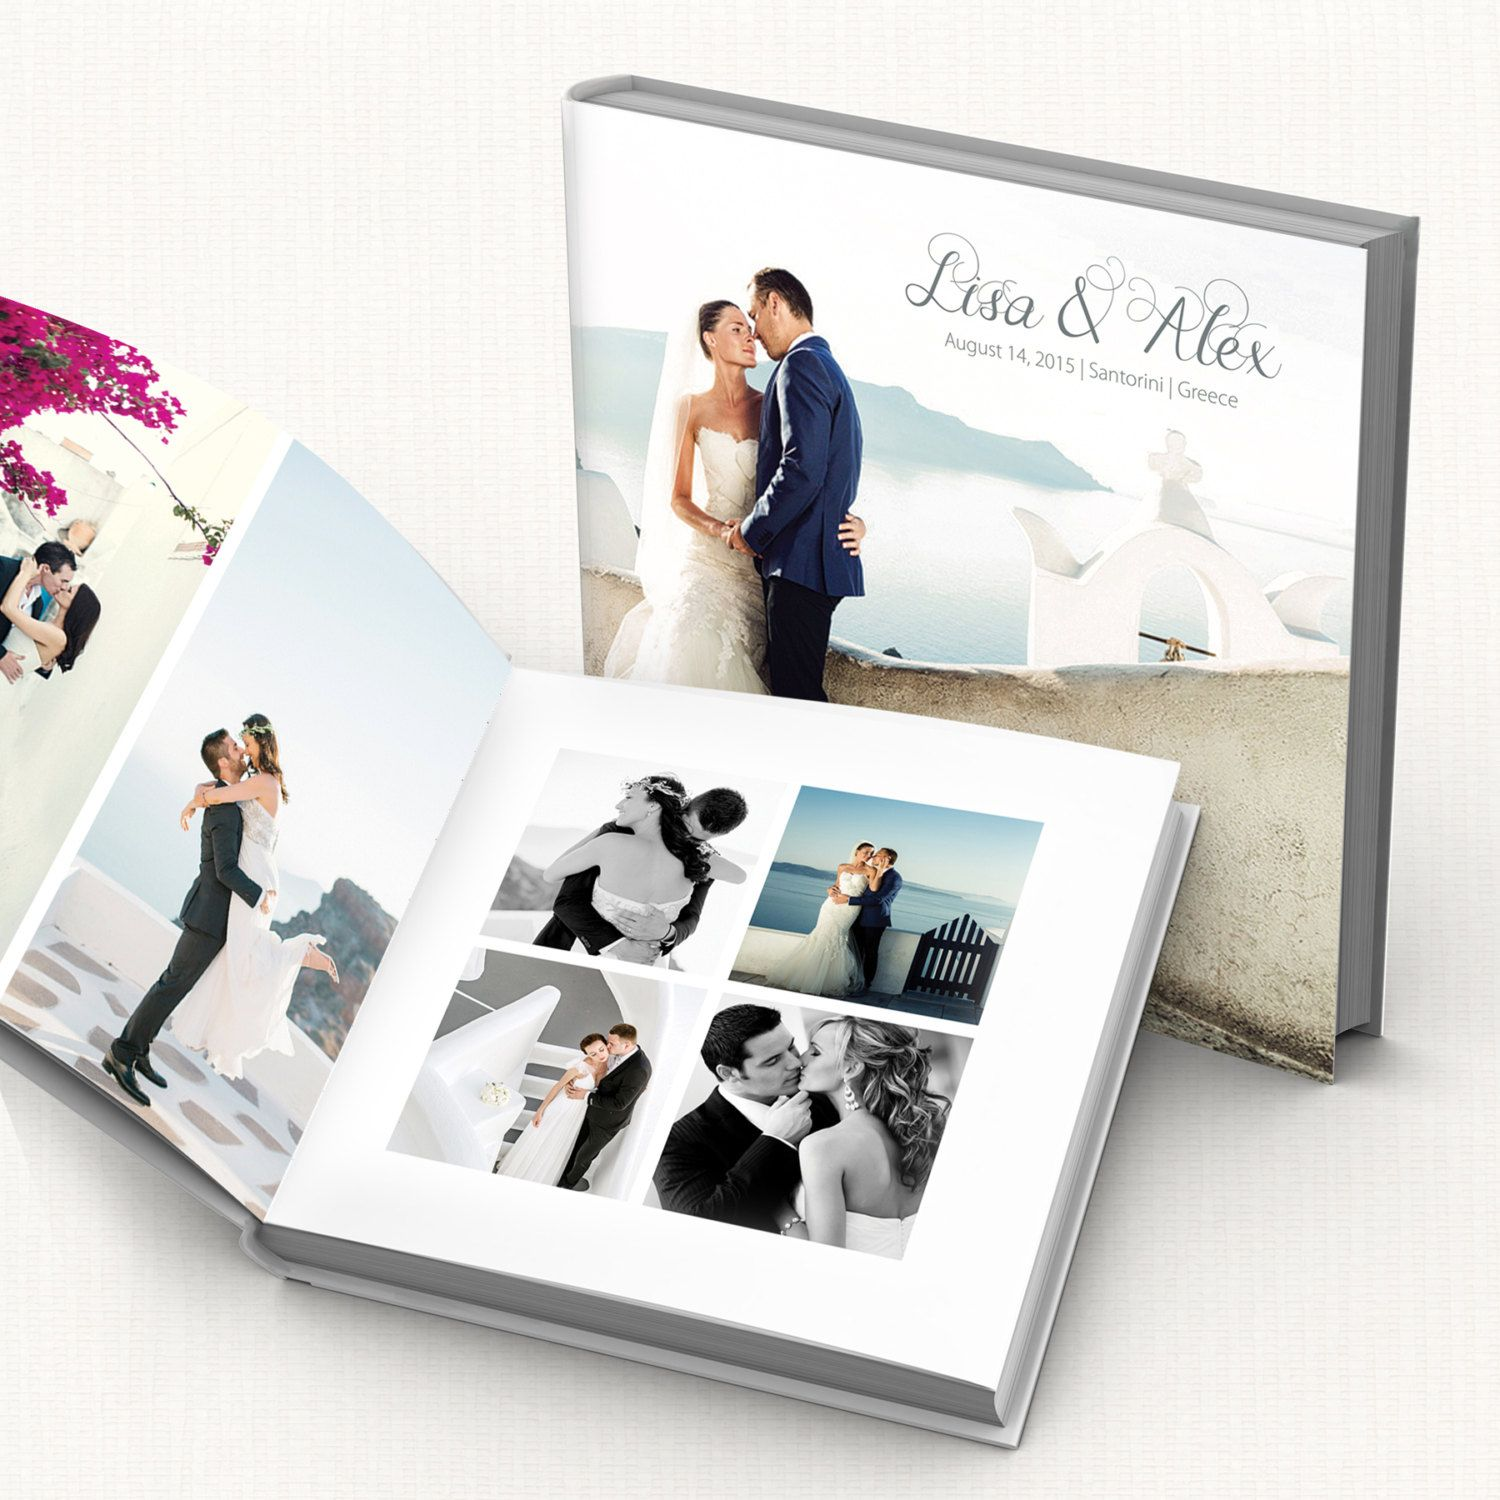 Wedding album psd template customizable modern wedding for Wedding photo album templates in photoshop